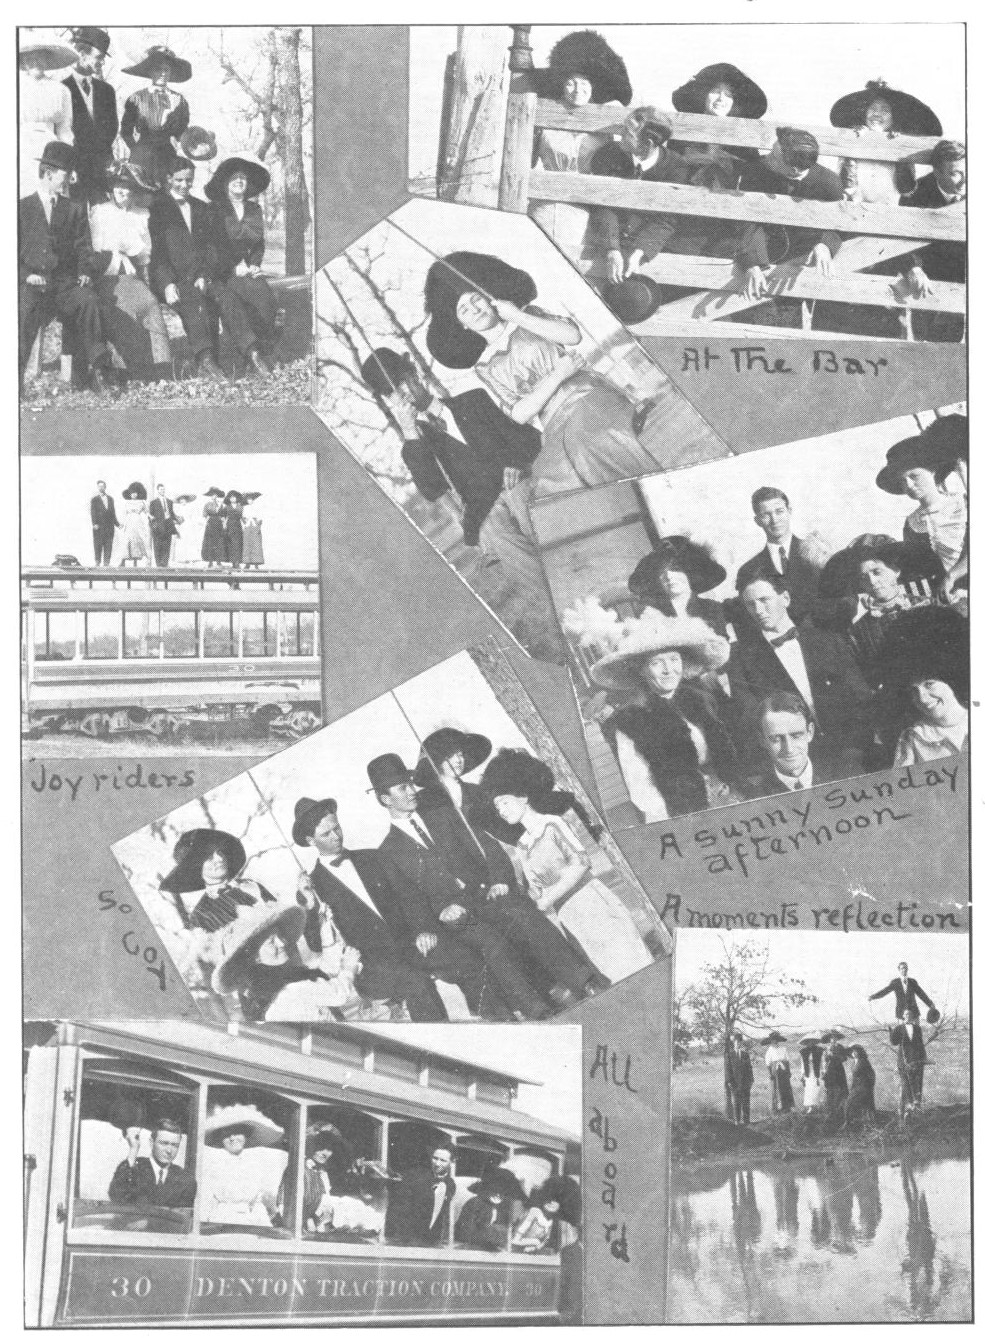 8 black and white photographs arranged at various angels on a grey page, some photos overlapping at corners. Each photo shows a group of men and women in early 1900s dress with hats and dark suits and dresses, outdoors.